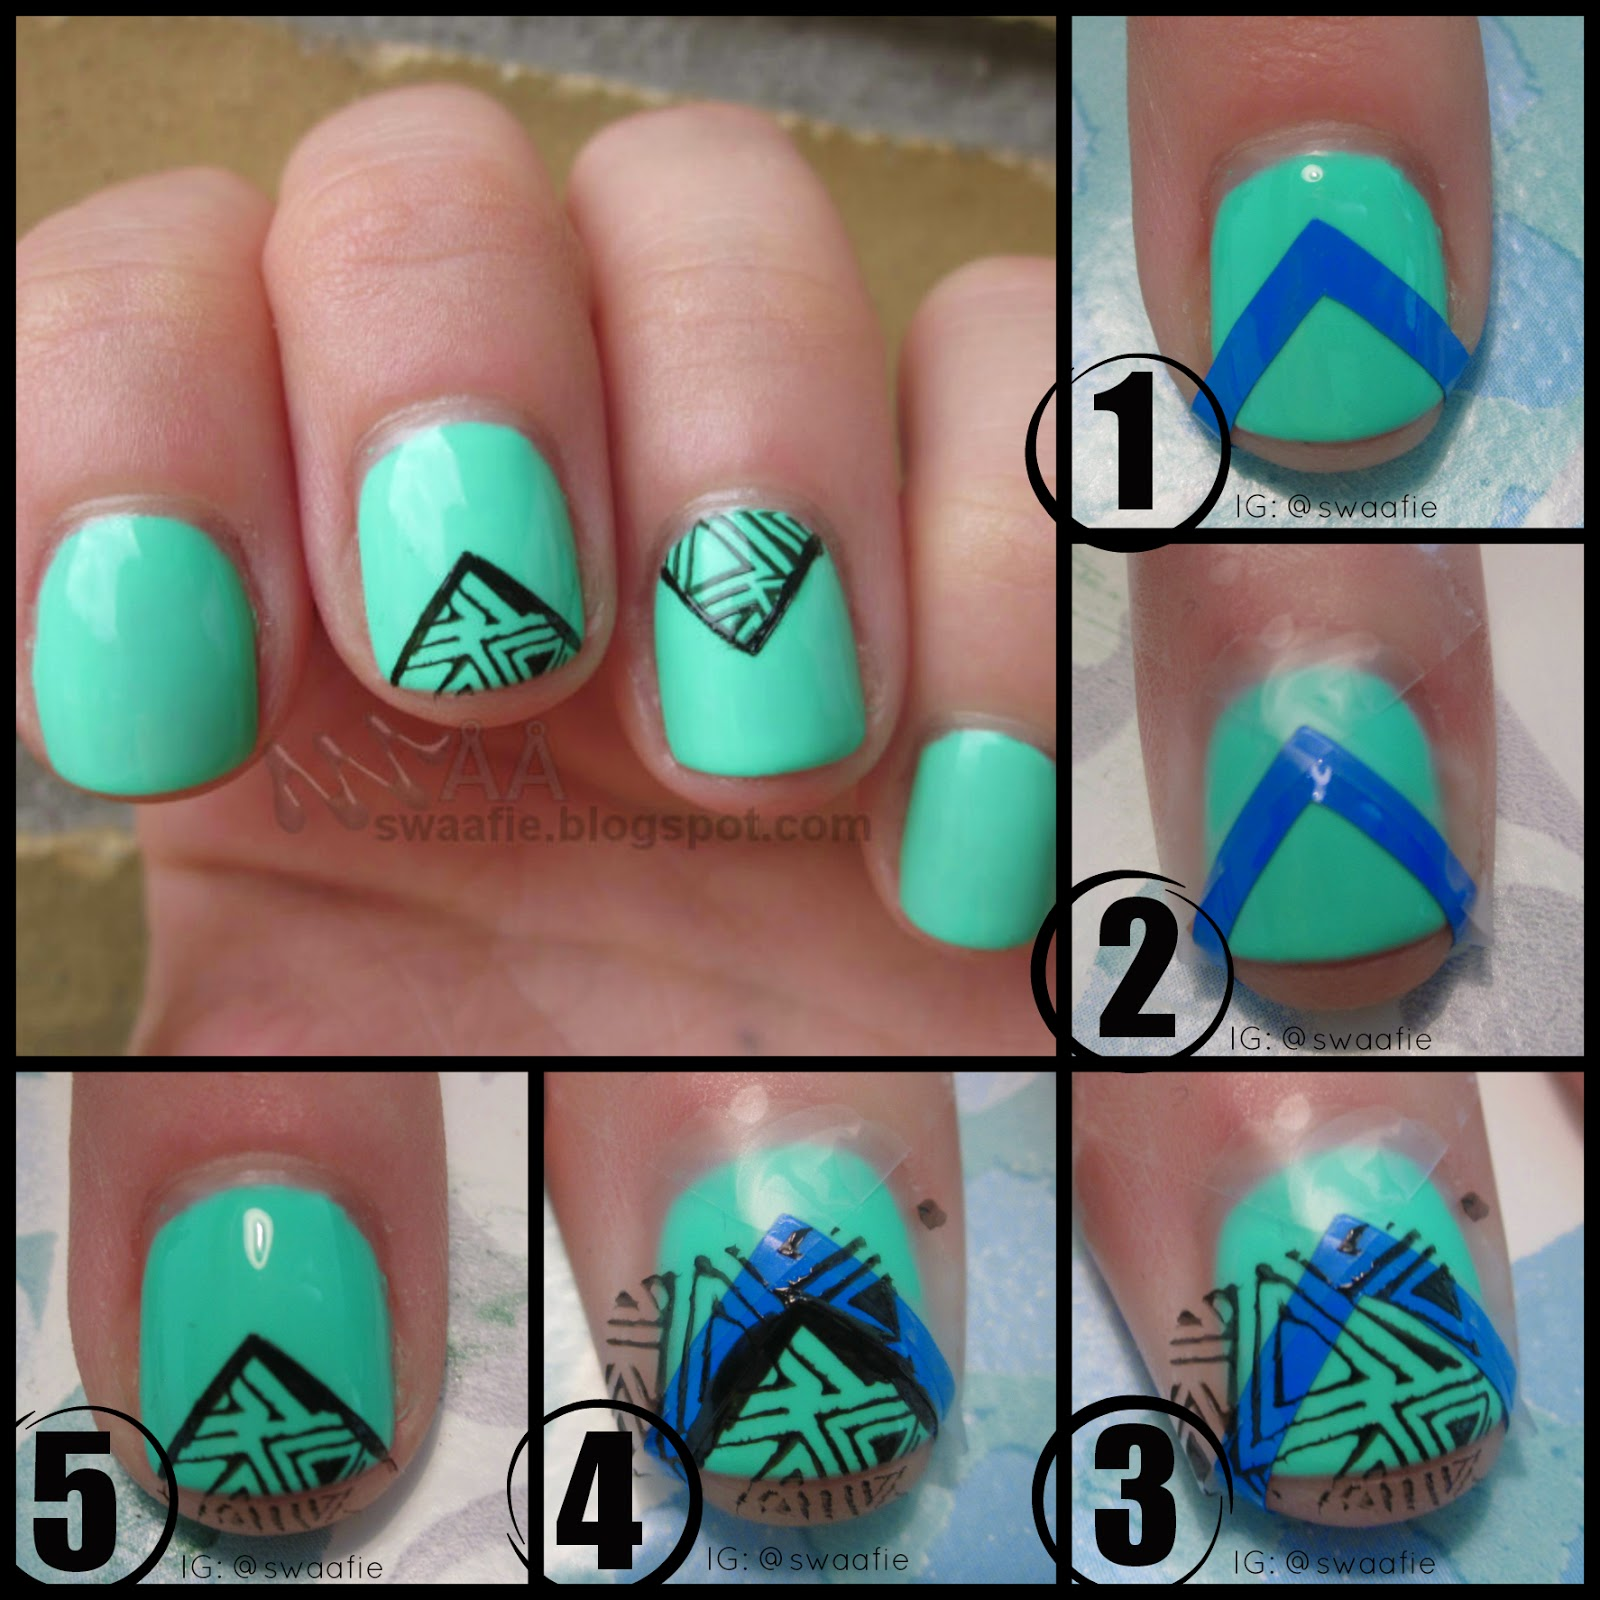 S W Å Å F I E: Happy Monday - Neon: Triangular Turquoise